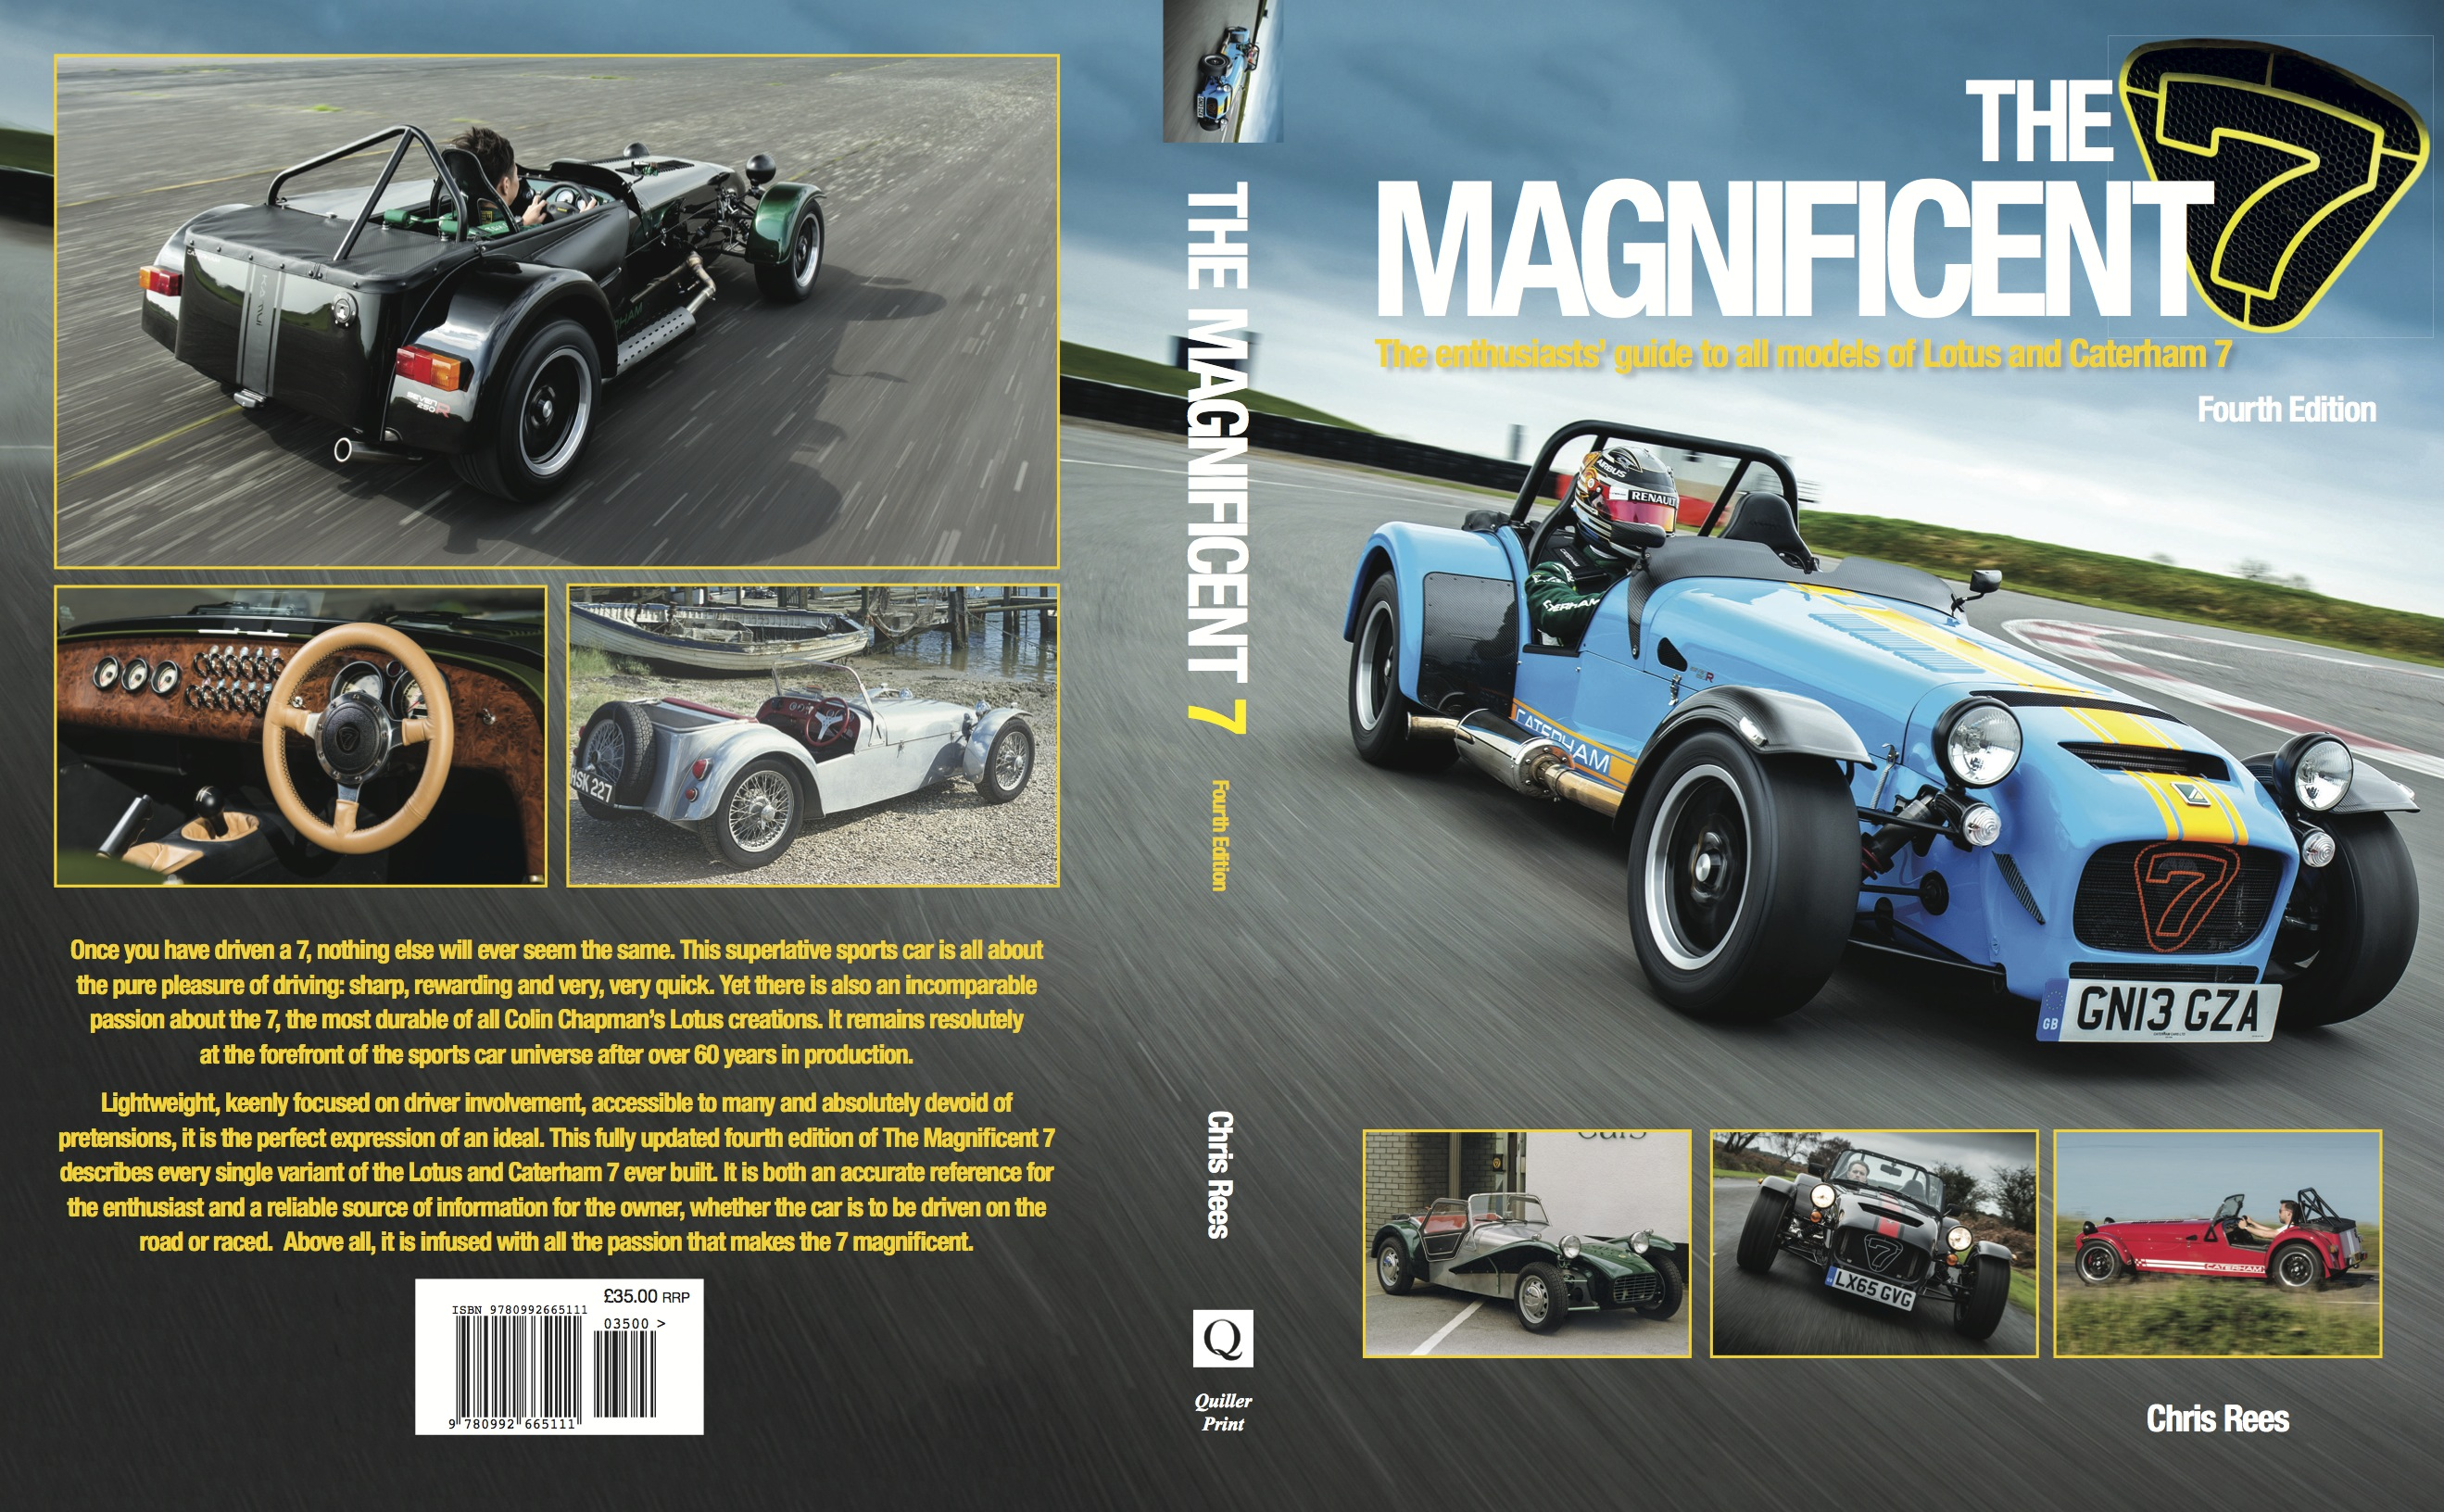 Magnificent 7 Caterham Lotus Book